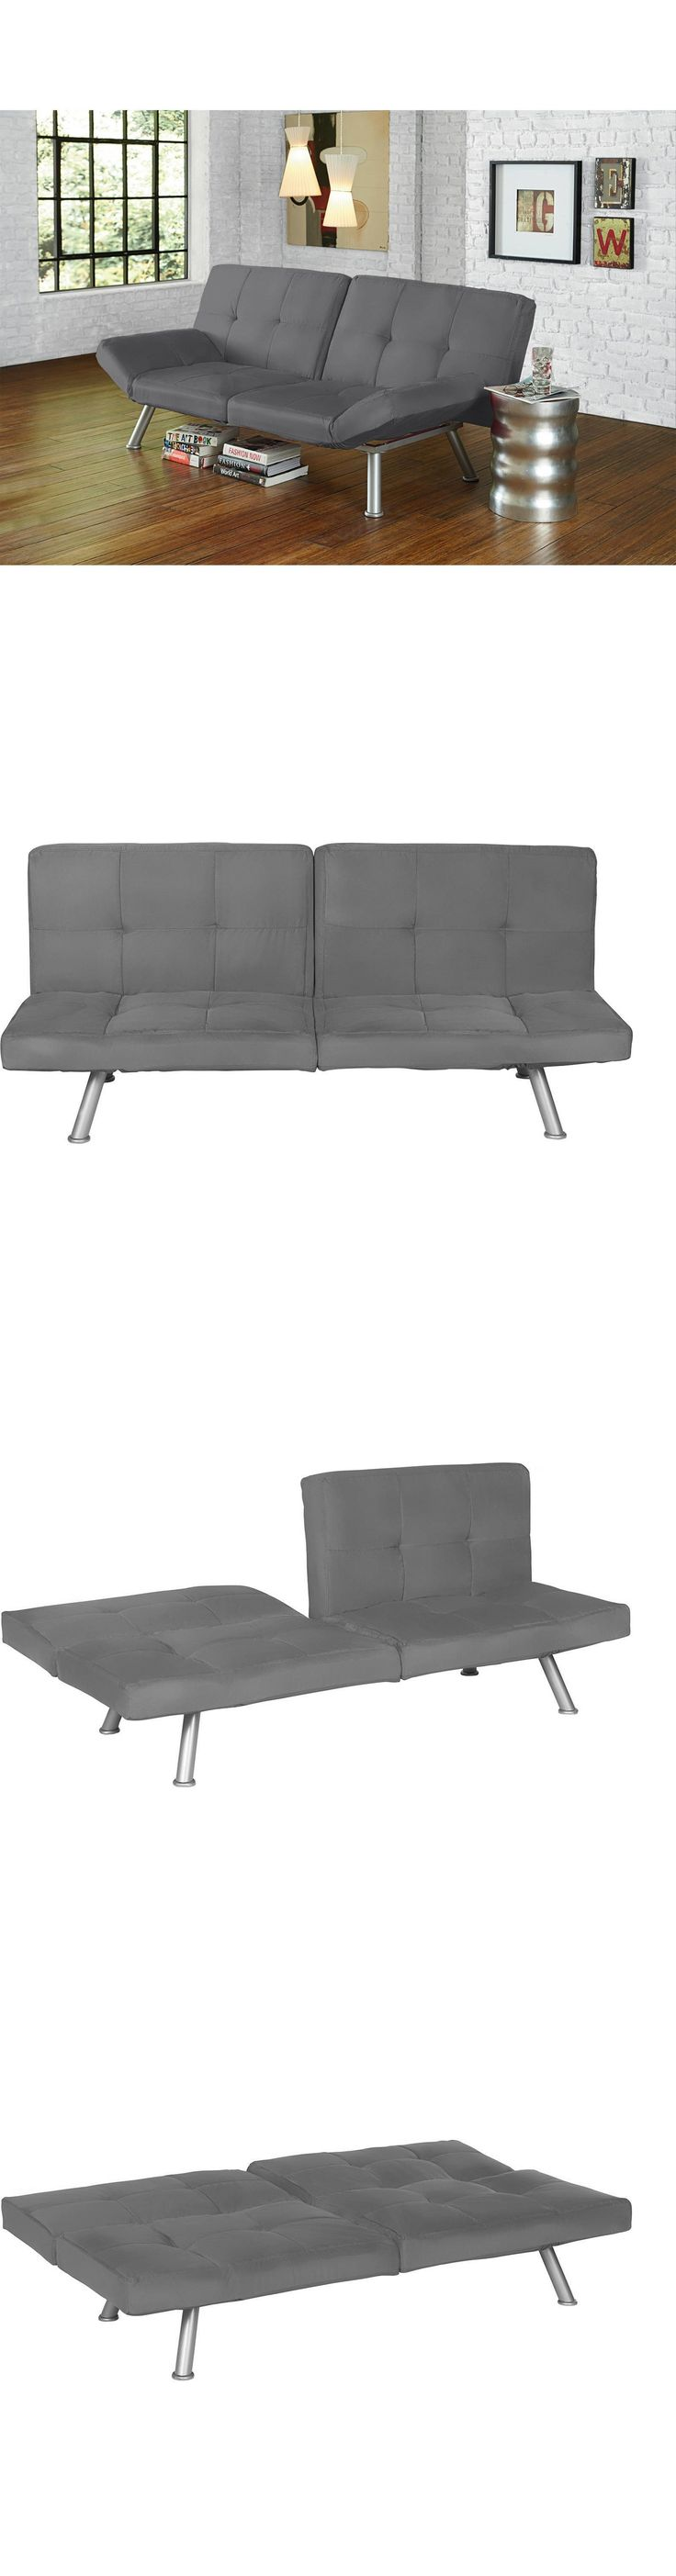 Futons Frames and Covers 131579: Gray Futon Sofa Bed Loveseat Couch Split Back Micro Suede Lounger Decor Sleeper -> BUY IT NOW ONLY: $199.99 on eBay!